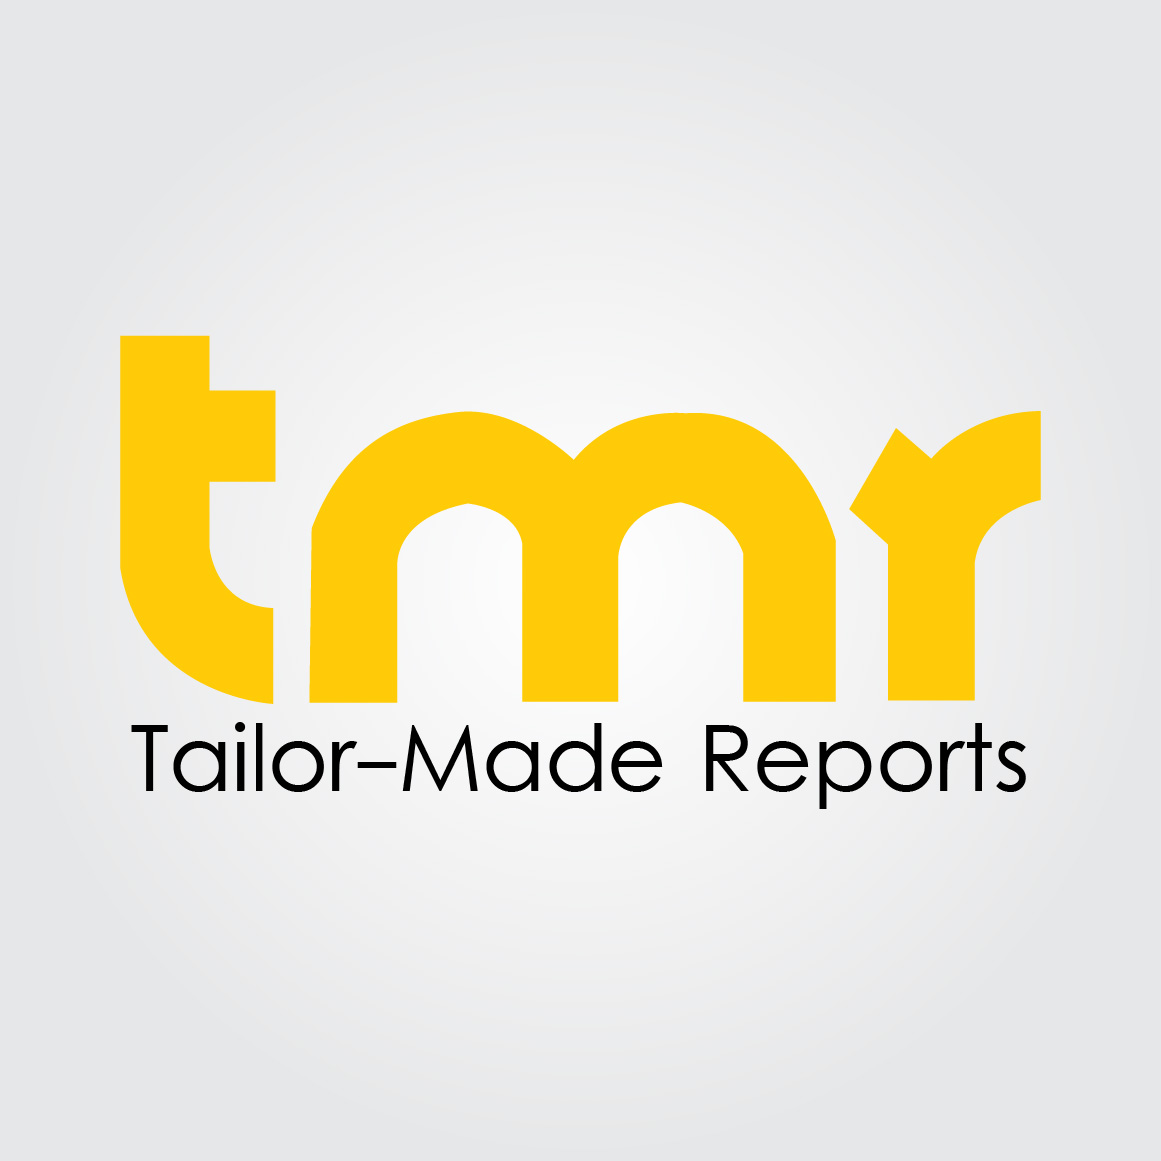 Circuit Breaker Market is extrapolated to observe tremendous growth opportunities by 2030 | TMR Research Study